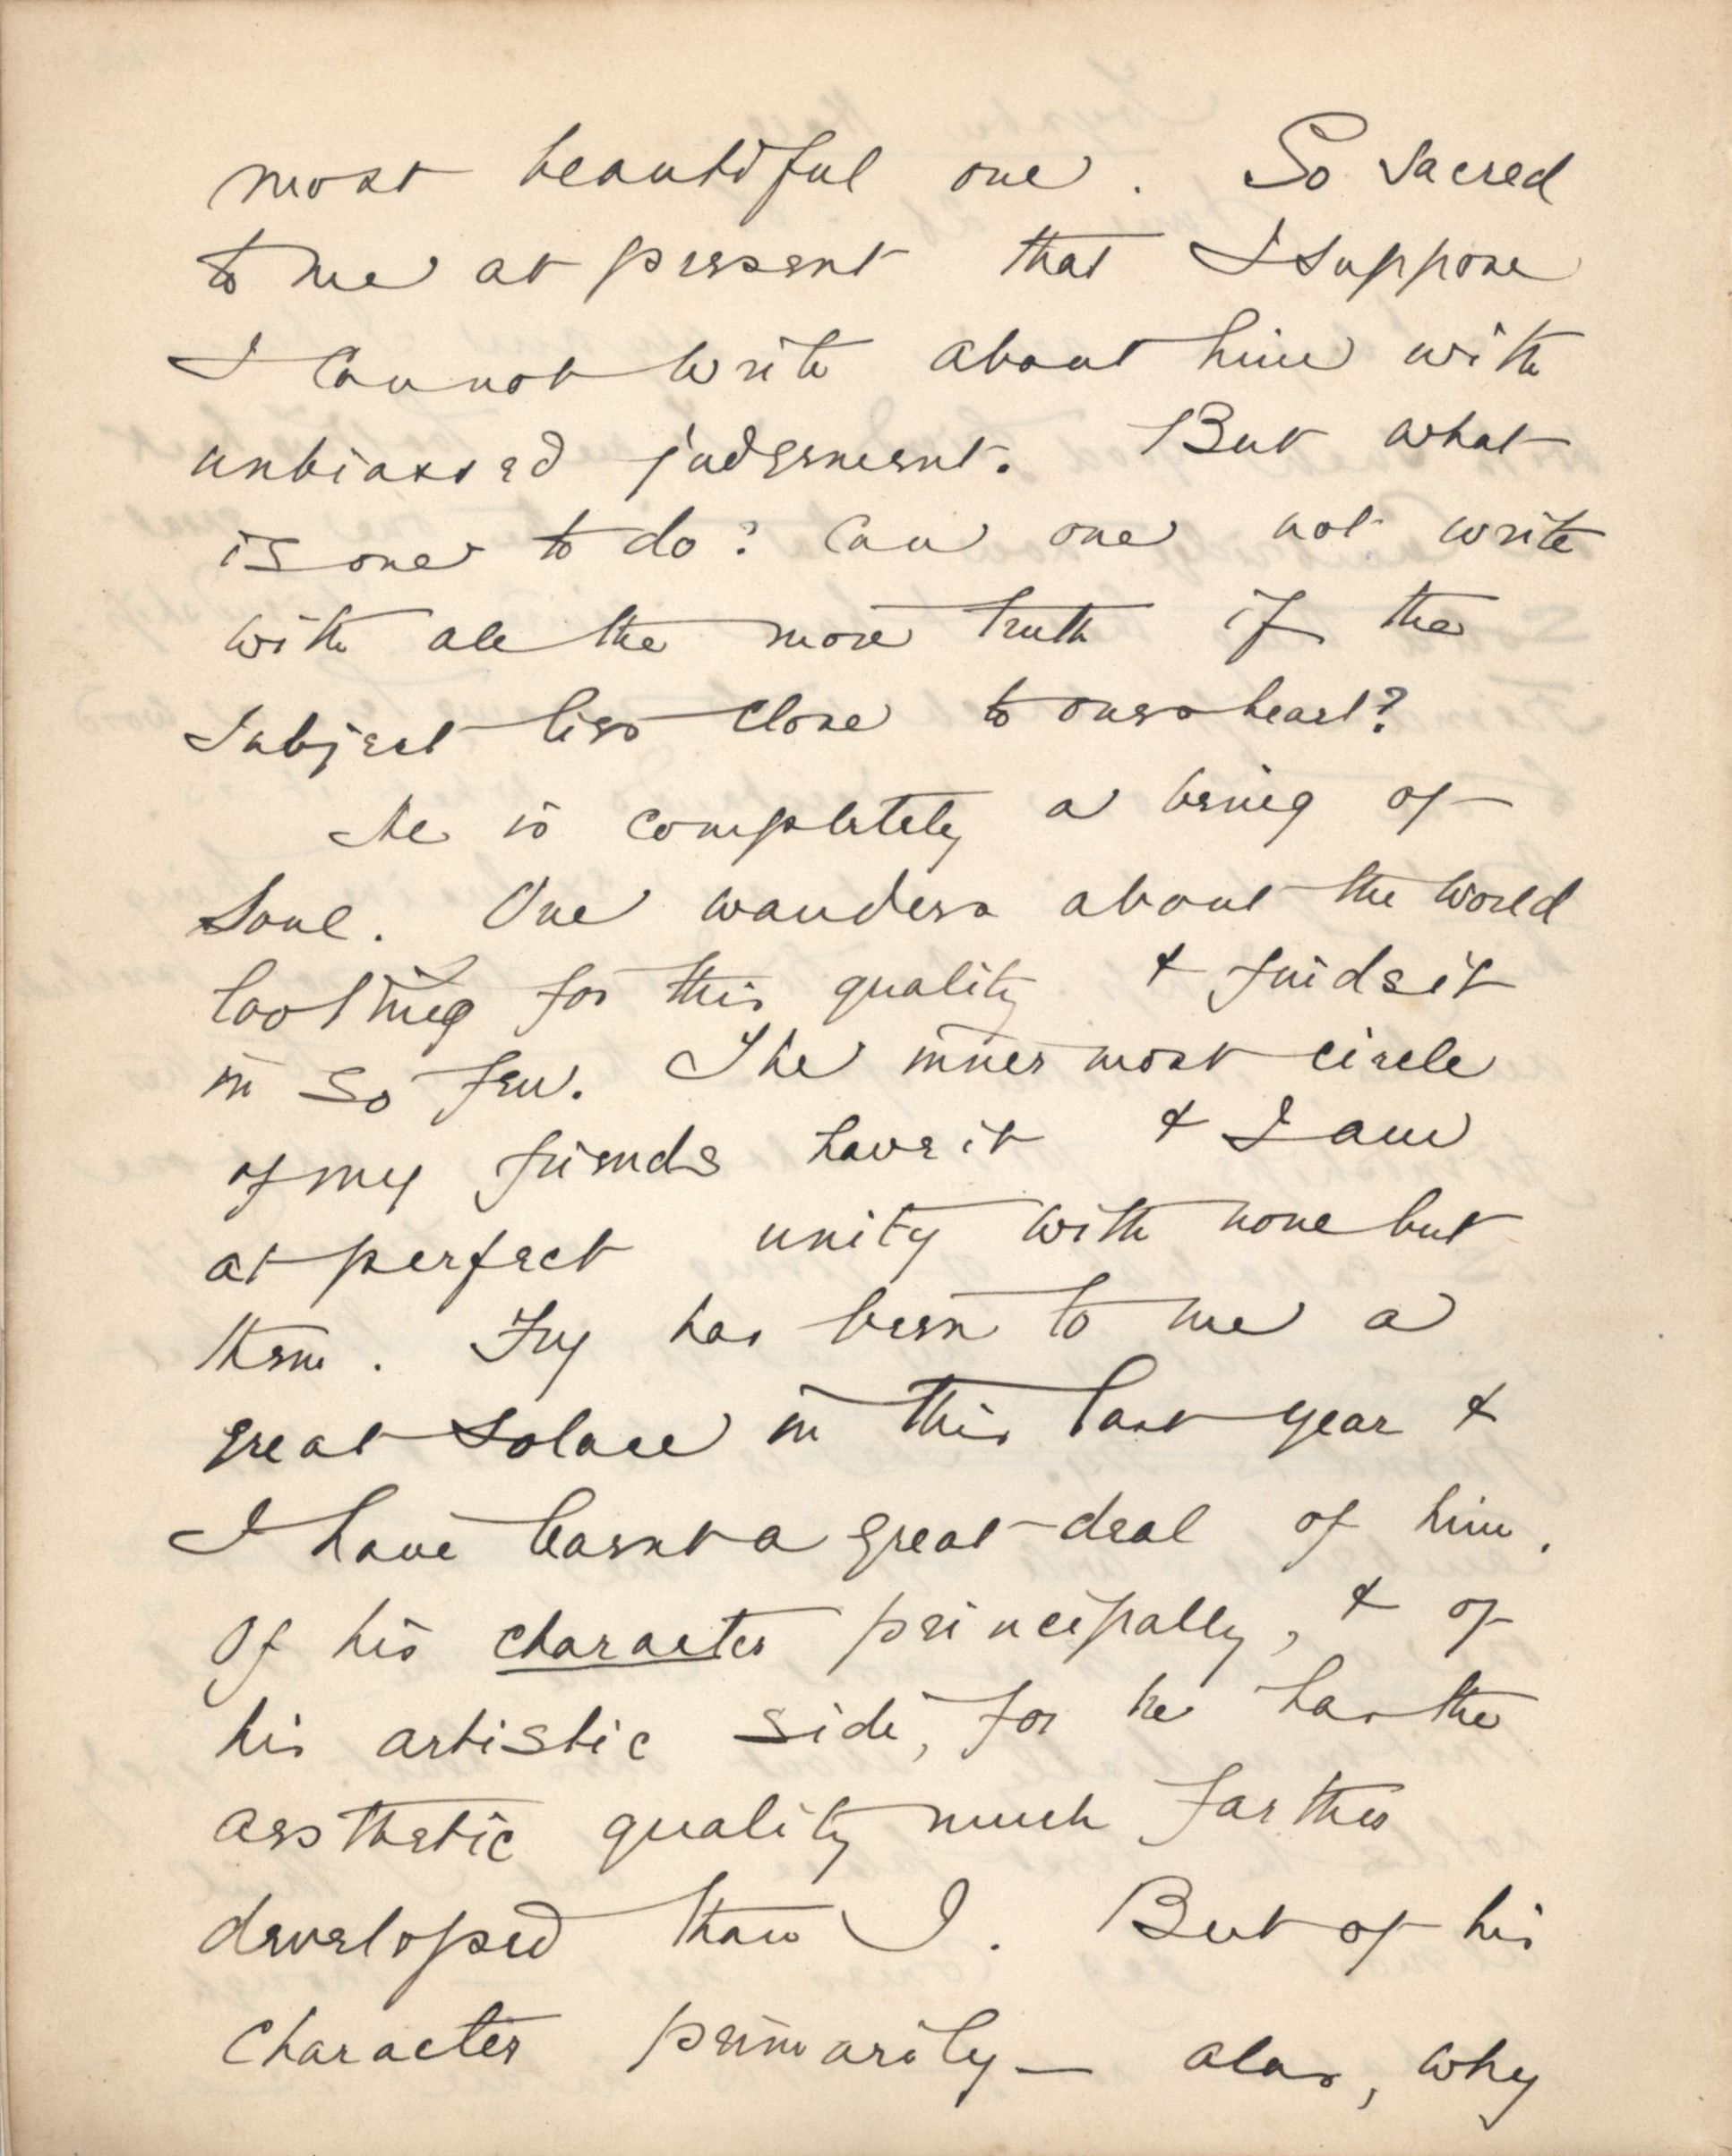 Ashbee's journal entry, 26 June 1886. [CRA/1/2, 206 verso]